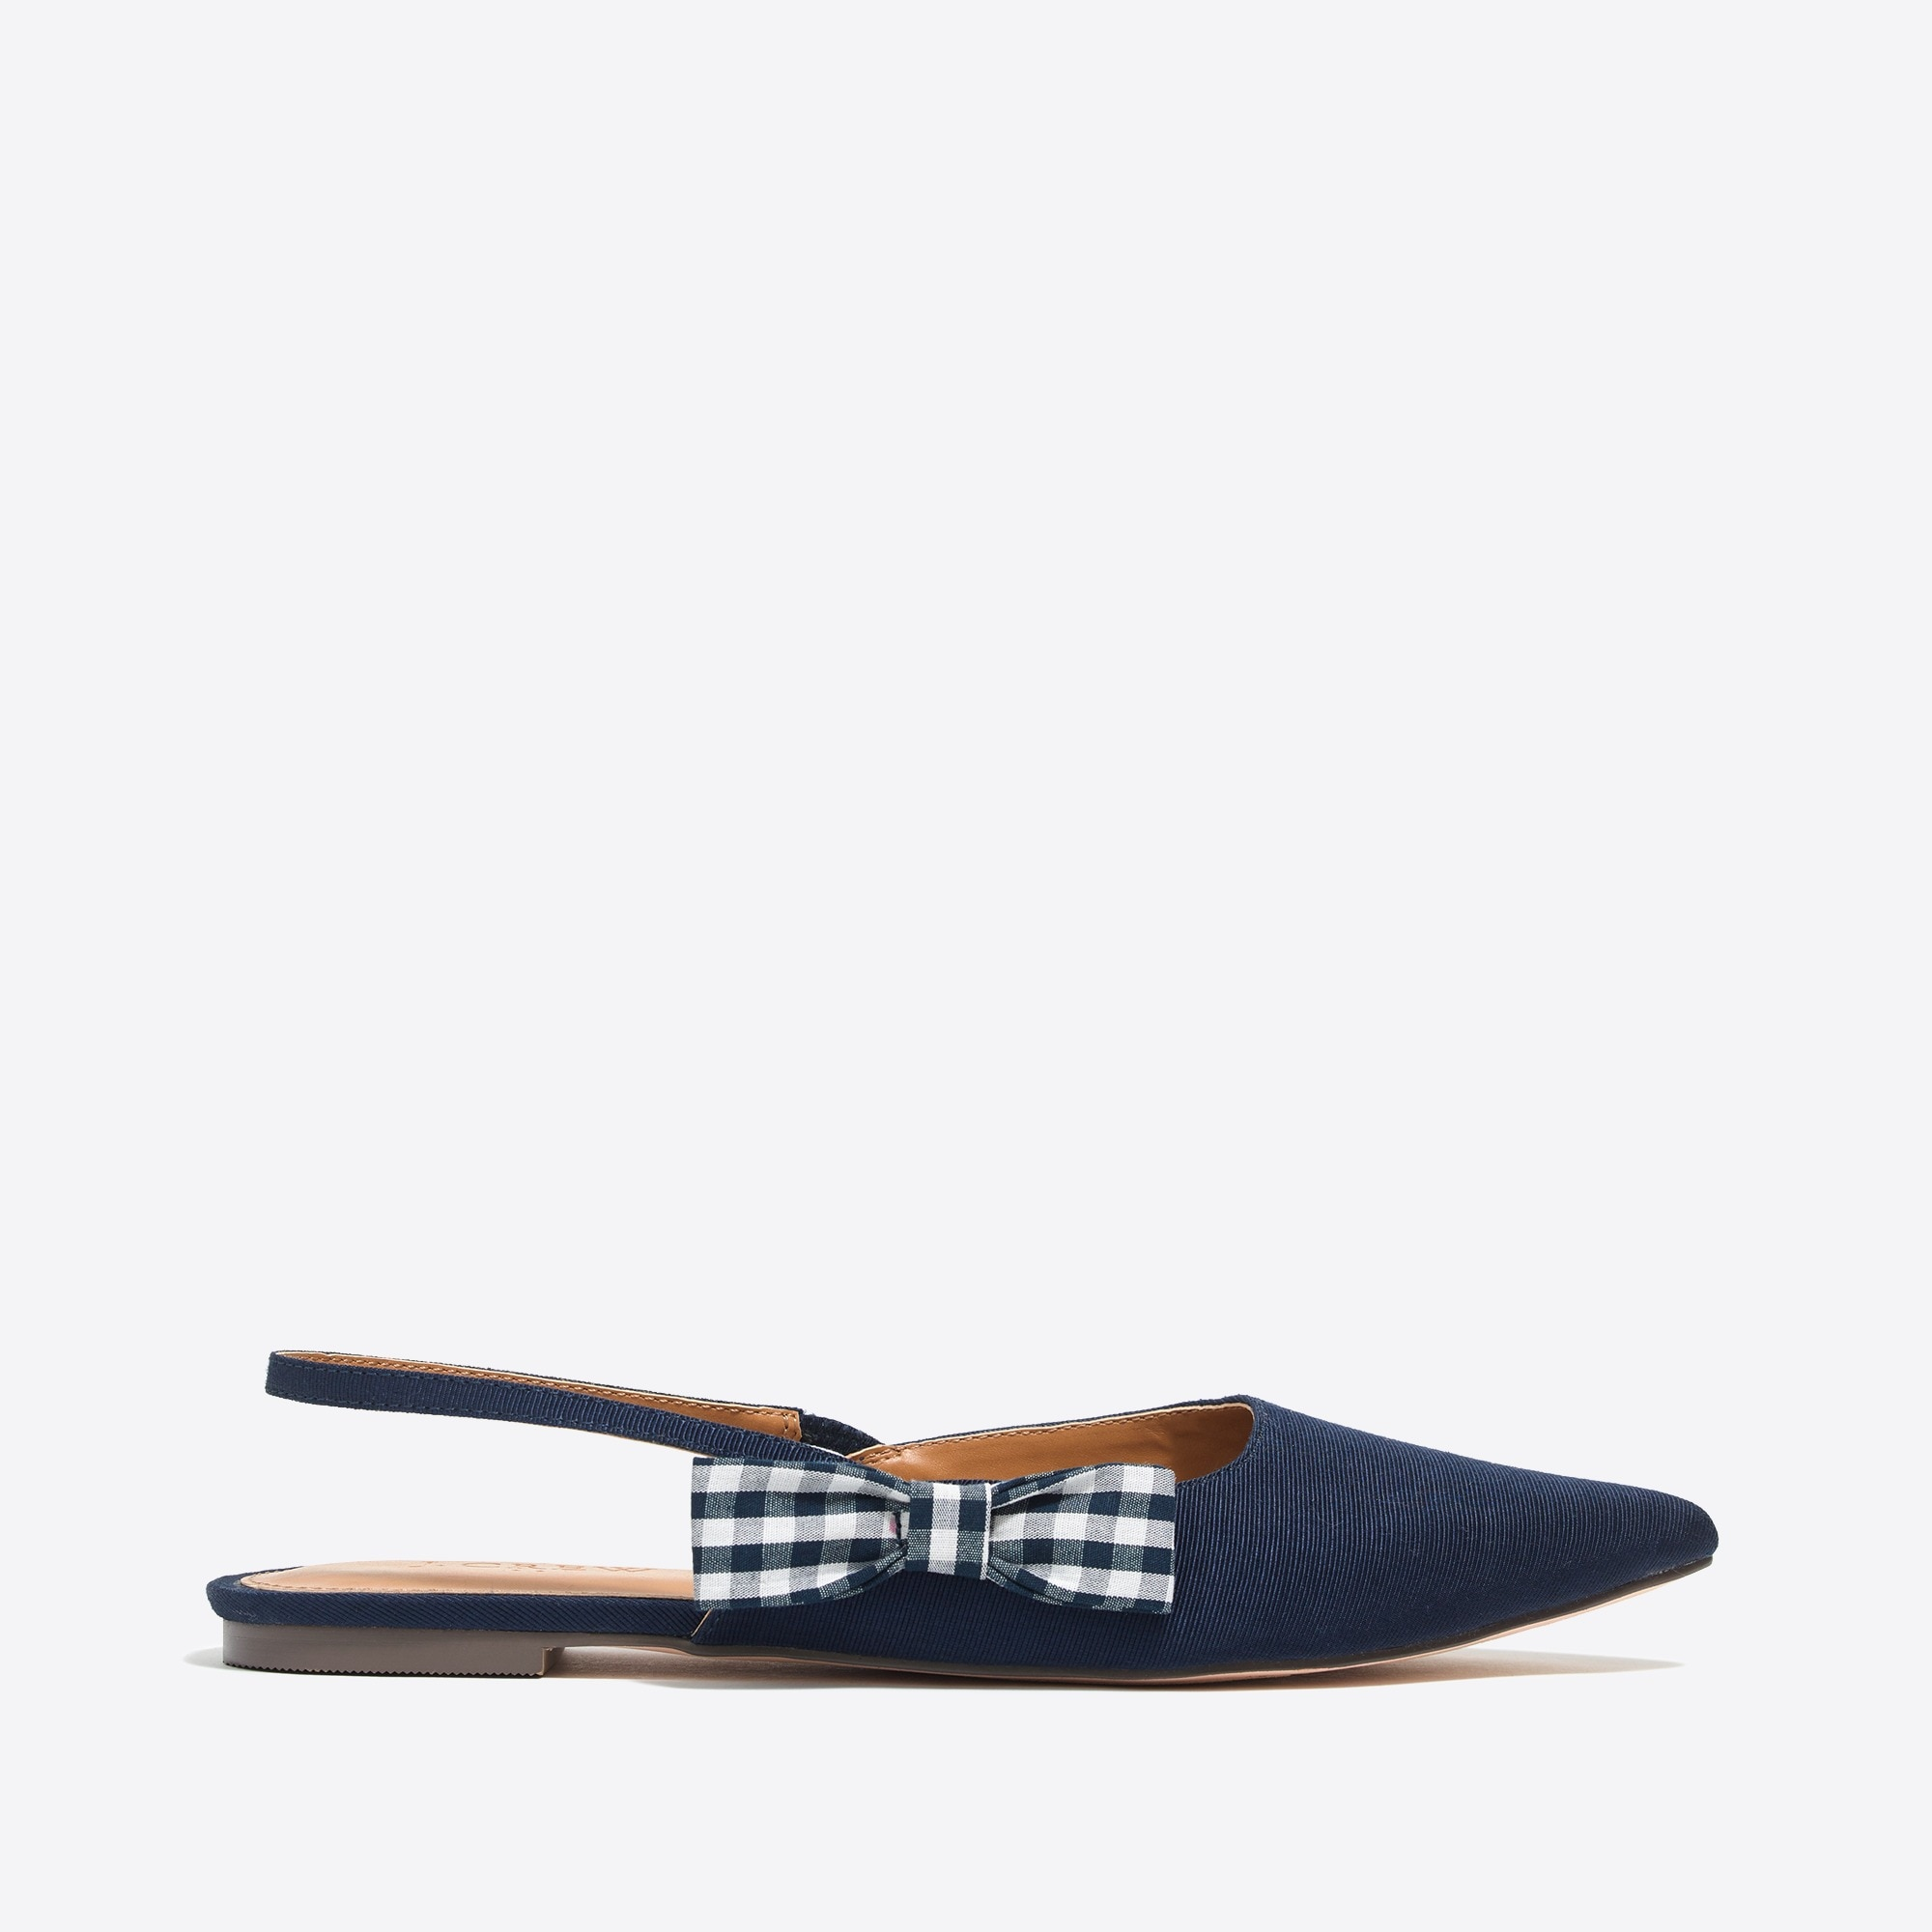 Image 3 for Slingback flats with gingham bow